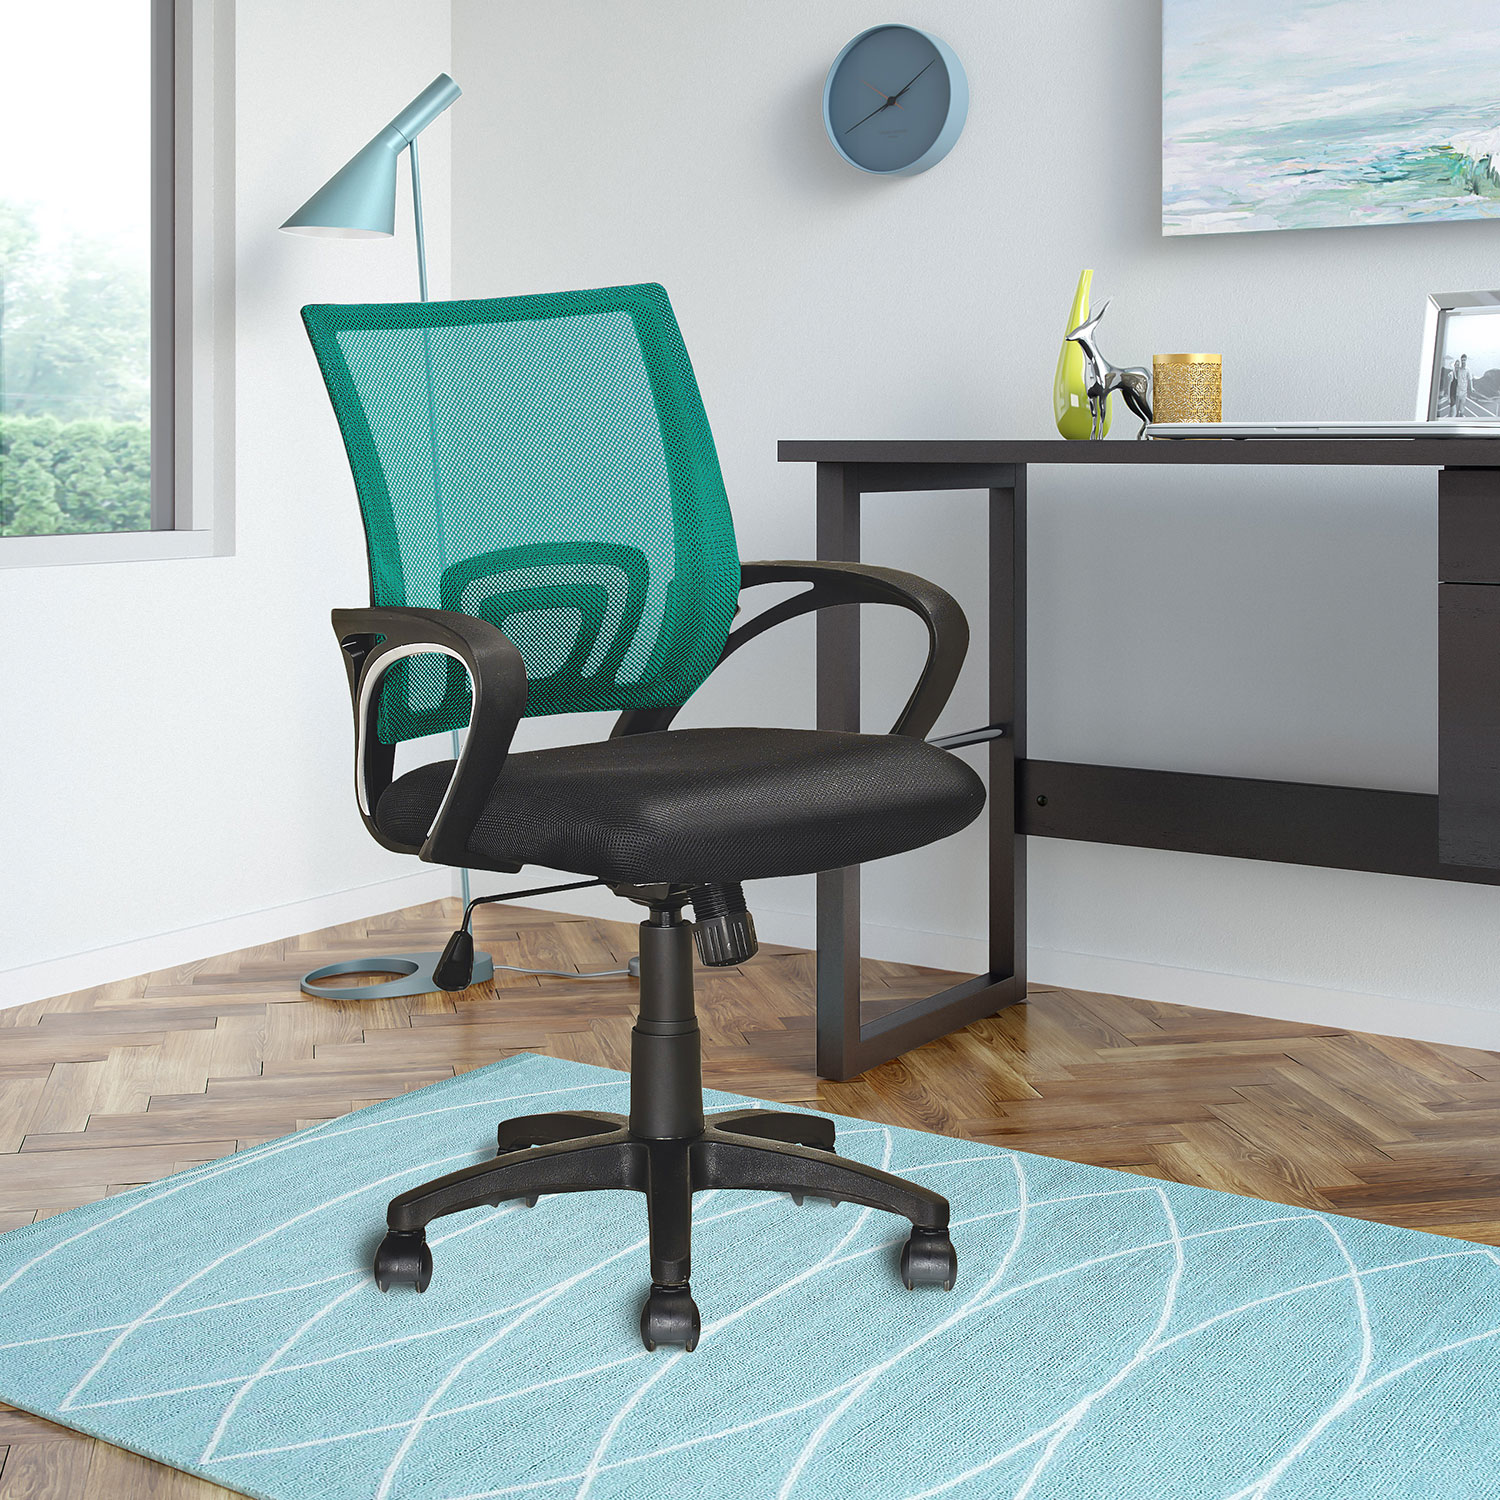 desk chair teal covers and bows south wales loft mesh office  the brick